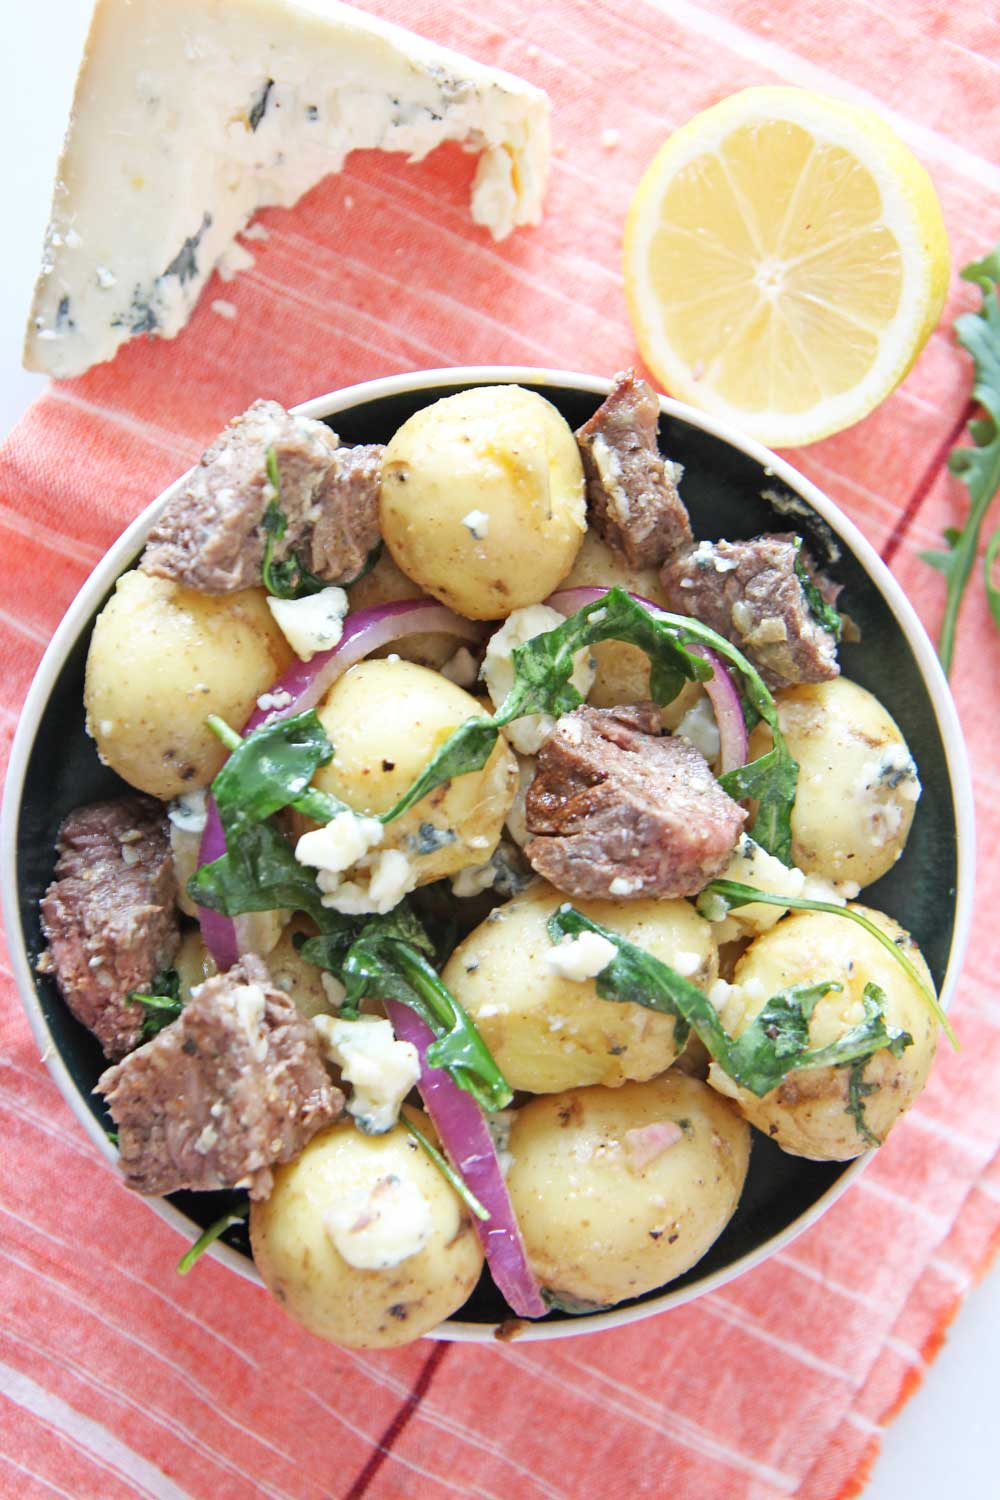 Steakhouse Steak and Potato Salad. This is a 20 minute recipe for busy weeknightt dinner. NY strip steak and Yukon gold potatoes mix with blue cheese and peppery arugula! Perfect next day leftovers. #potatosalad #perfectsteak